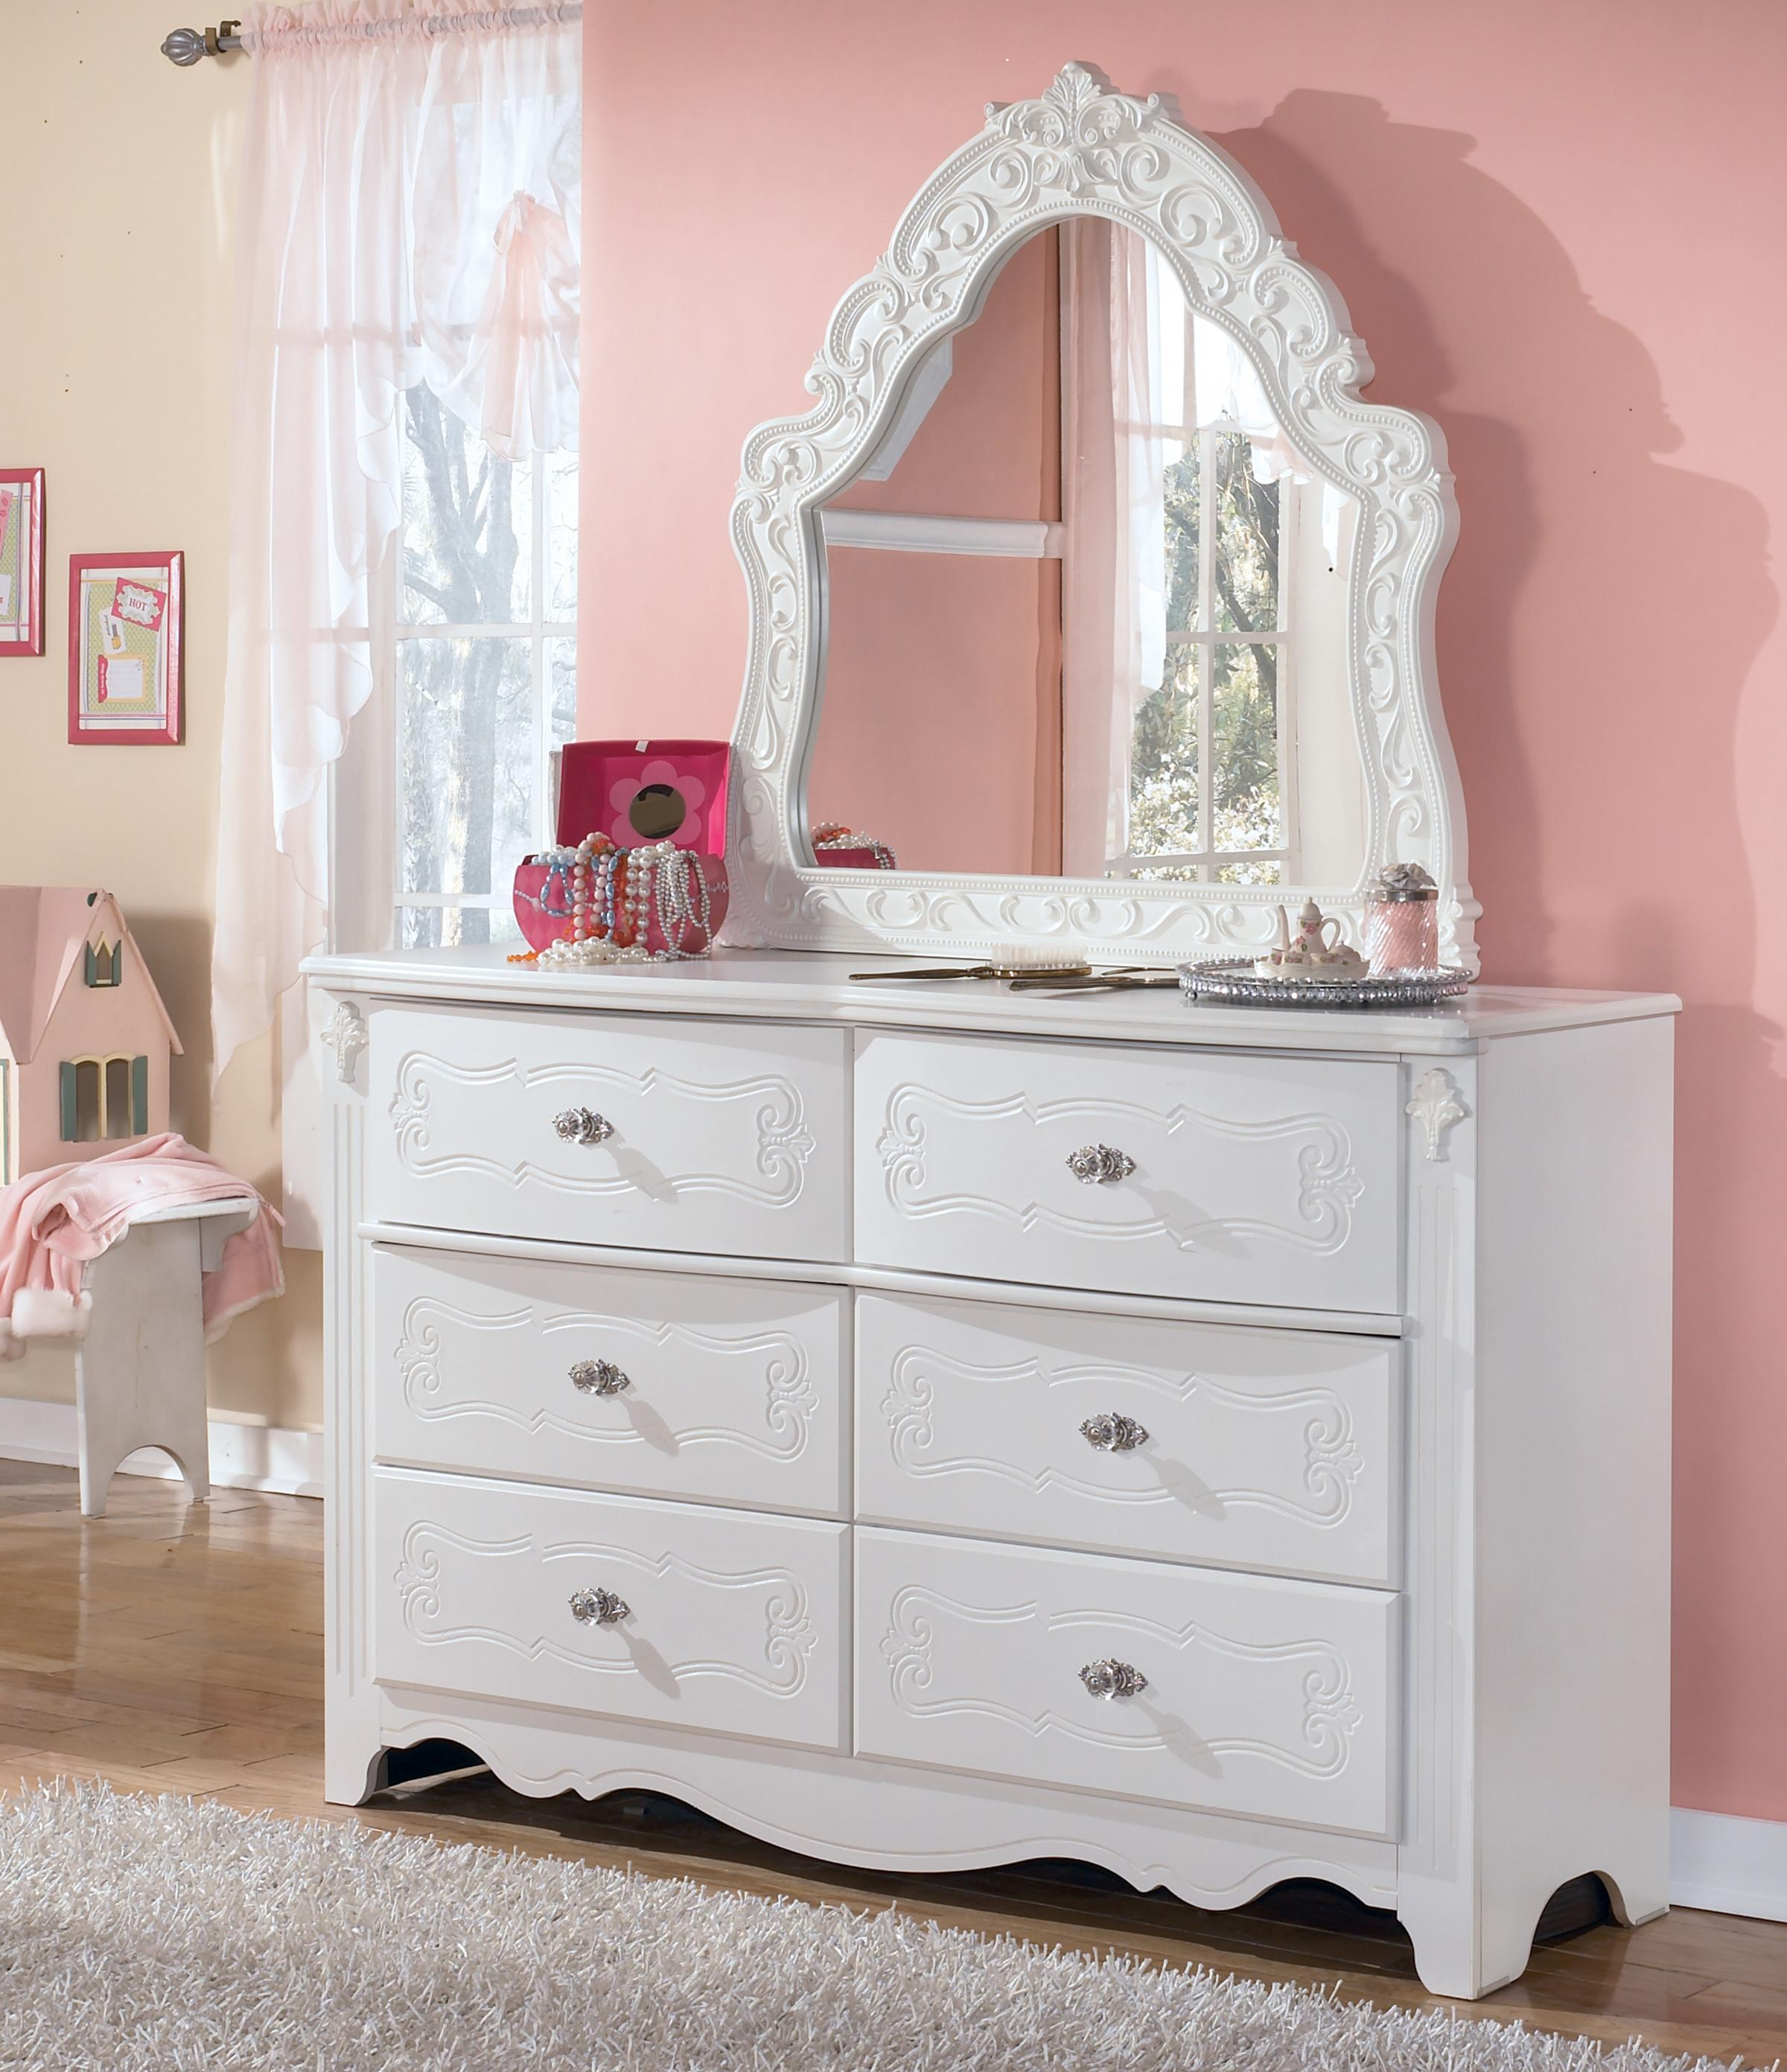 Exquisite Dresser & Bedroom Mirror by Signature Design by Ashley at Sparks HomeStore